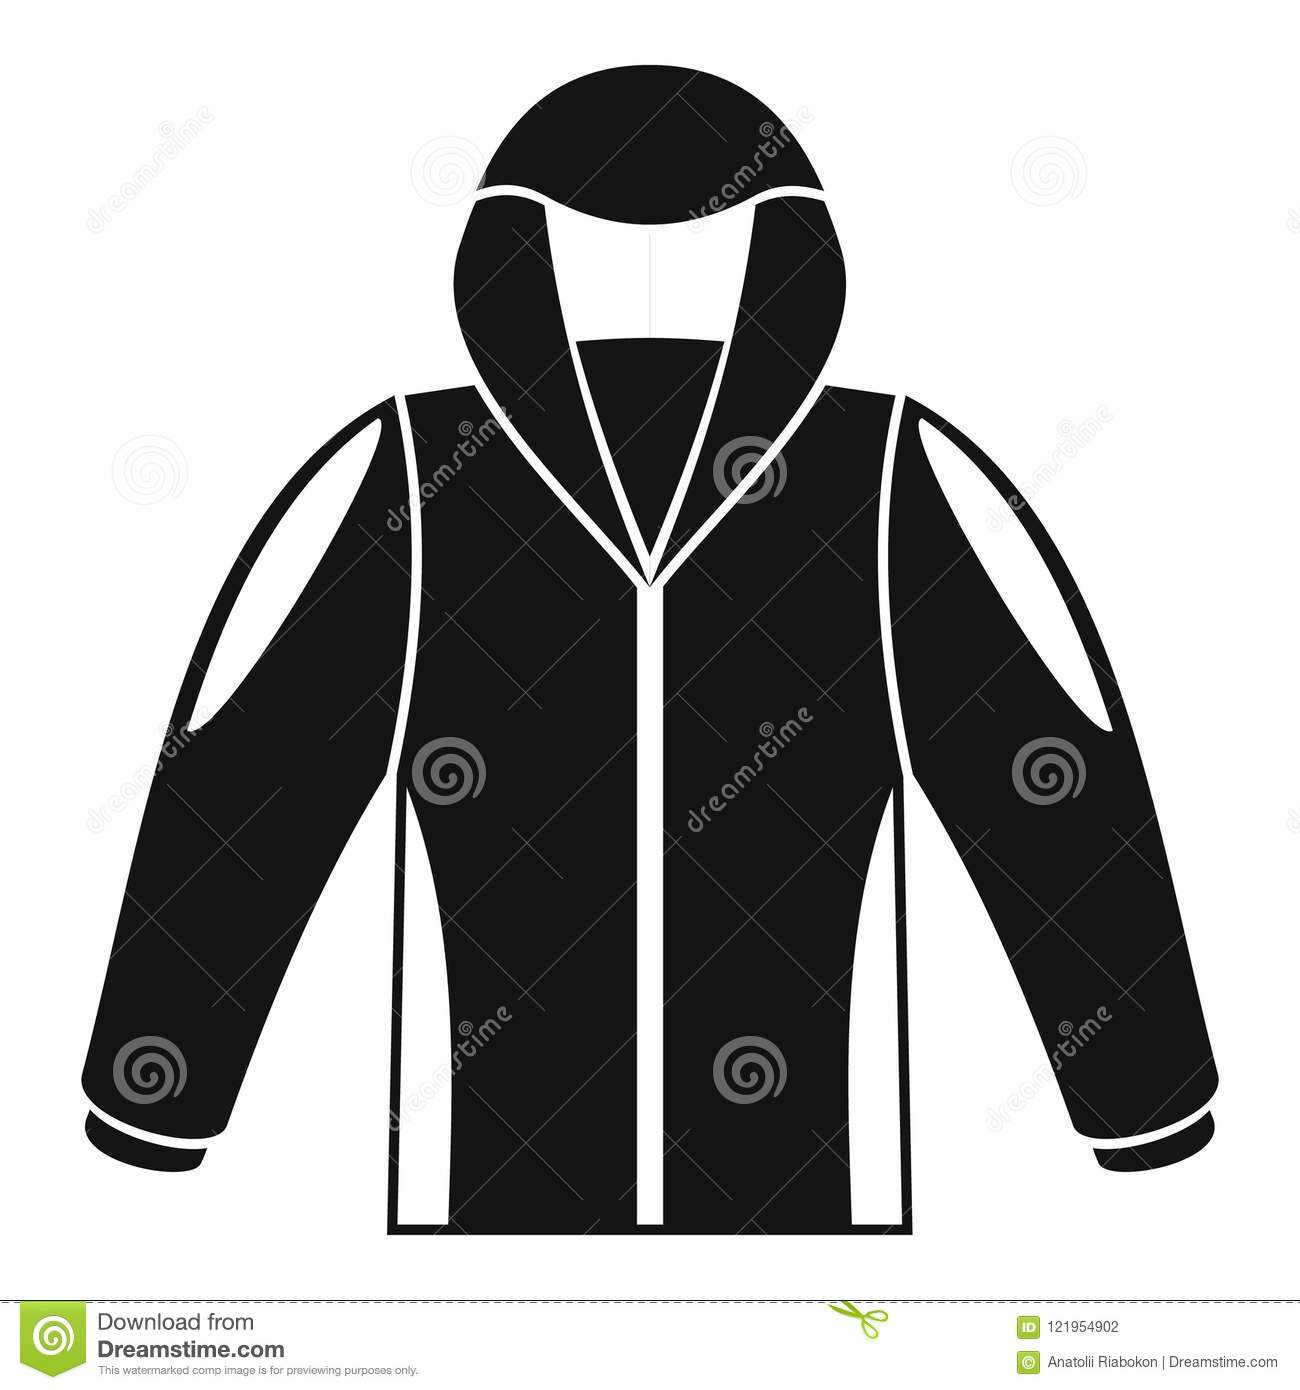 8dd294cb3c5e Camp jacket icon. Simple illustration of camp jacket vector icon for web  design isolated on white background. More similar stock illustrations